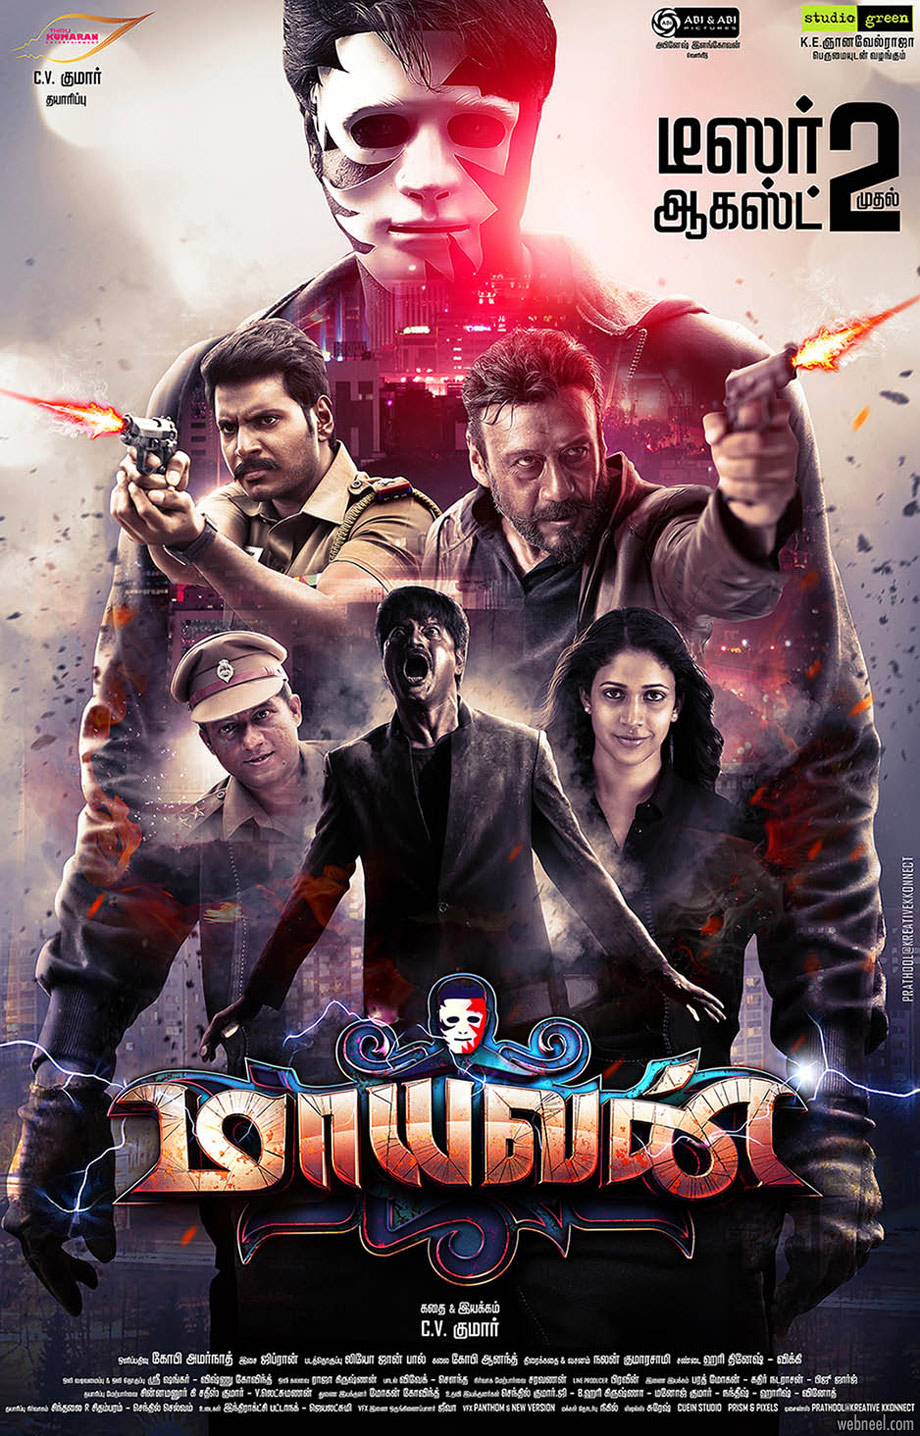 tamil movie poster design mayavan by prathoolnt